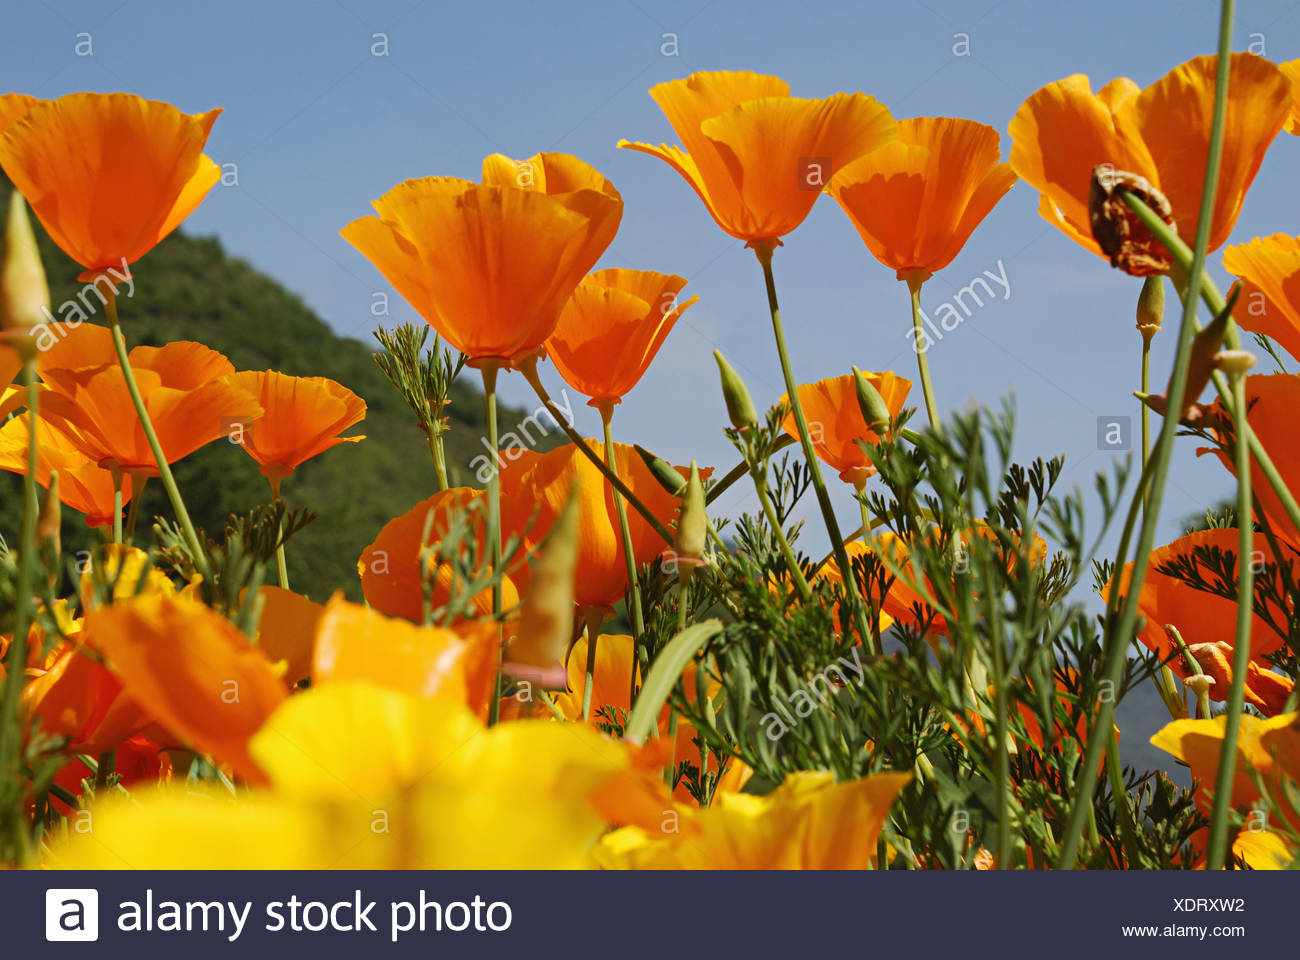 Beautiful flowers in orange and yellow colour srinagar jammu beautiful flowers in orange and yellow colour srinagar jammu kashmir india izmirmasajfo